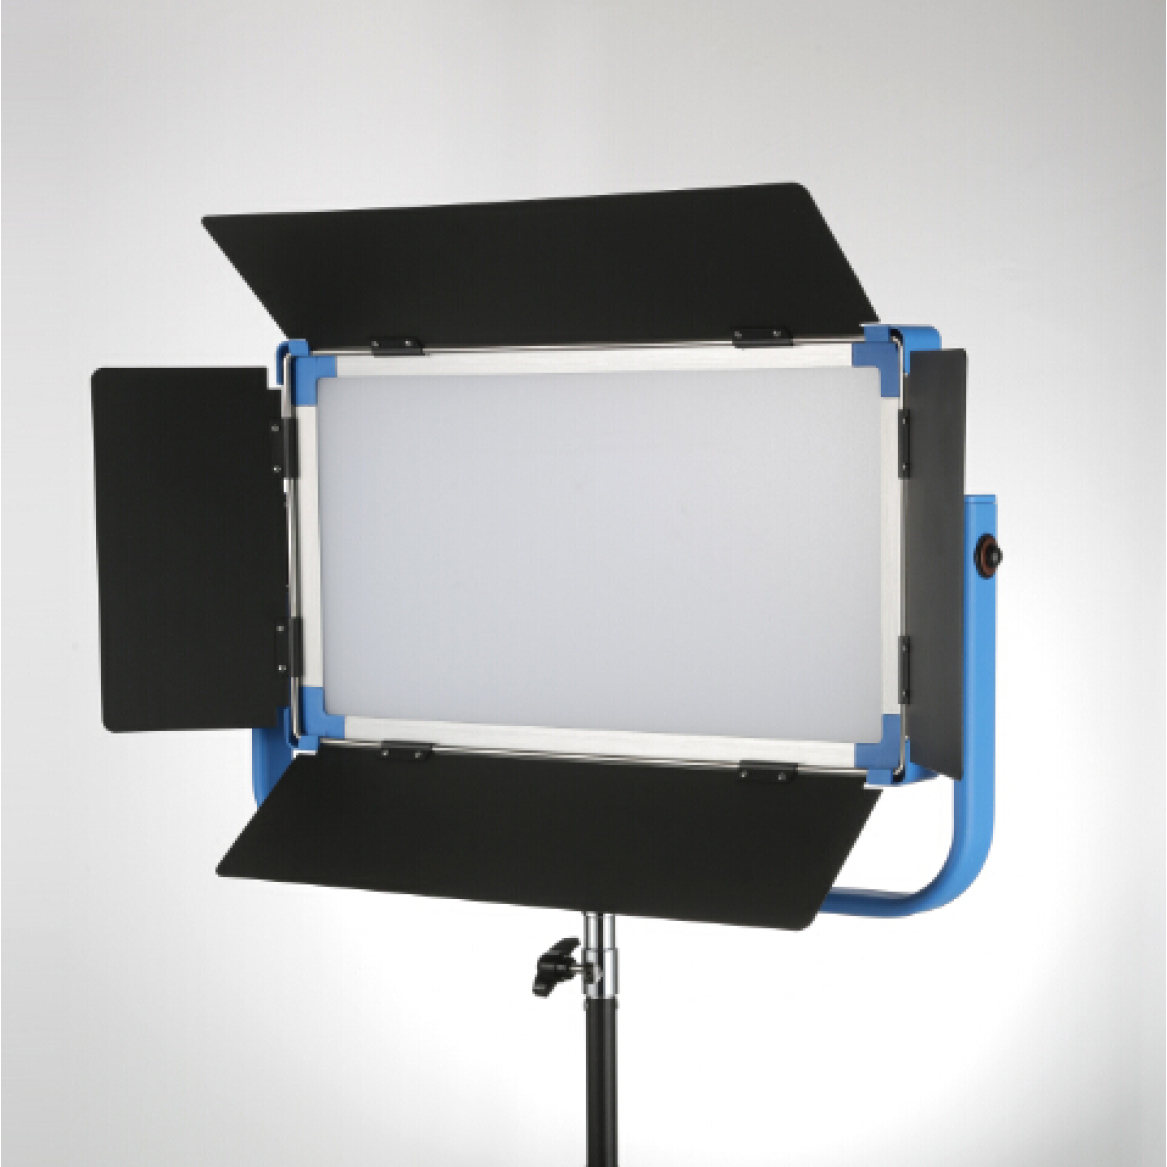 Vloggears RGB-150 New RGB light,CRI 95 film light studio lights, remote/rgb dmx led light equipment for video and broadcas